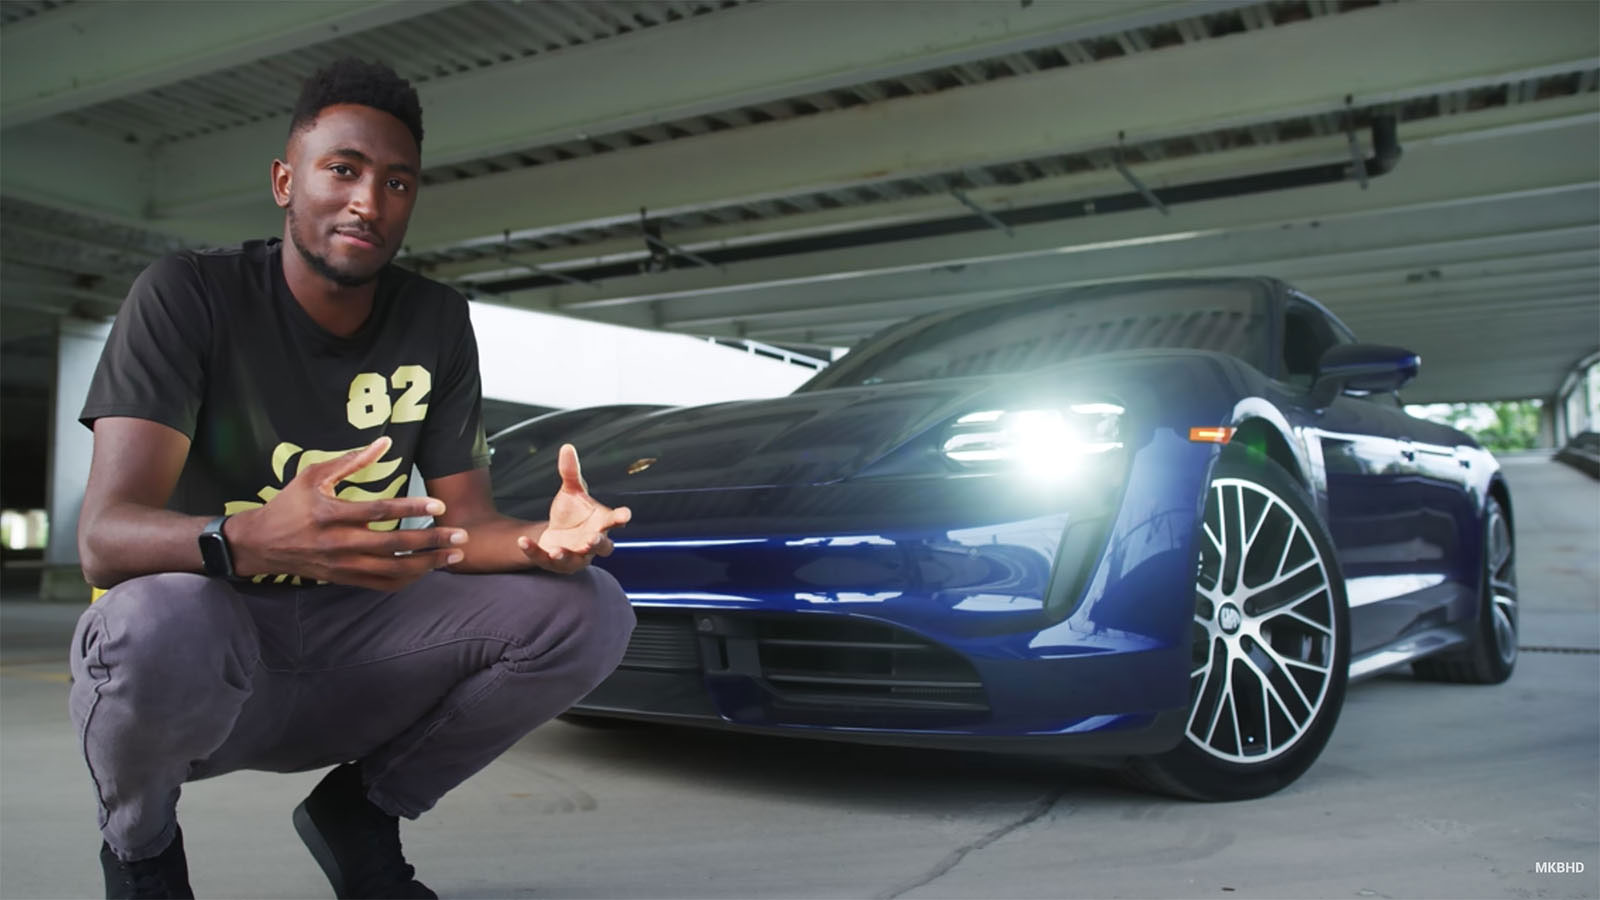 Marques Brownlee crouching in front of carYouTube: Marques Brownlee